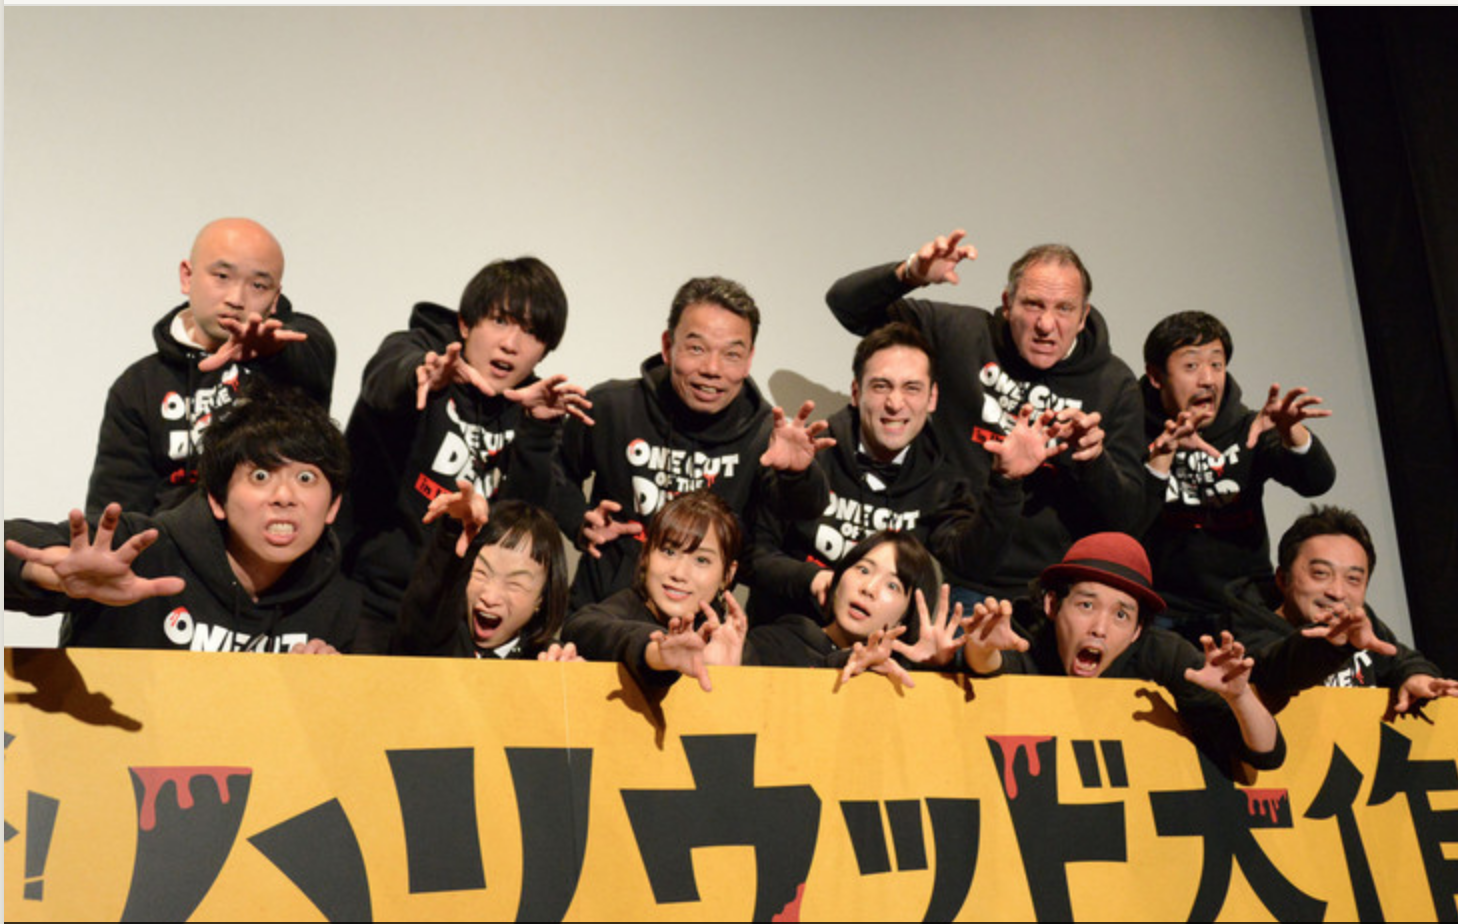 One Cut Of The Dead Hollywood - March 1, 2019The premiere in Ikebukuro Cinema Rosa after a successful broadcast on Abematv has been featured at 映画ナタリー